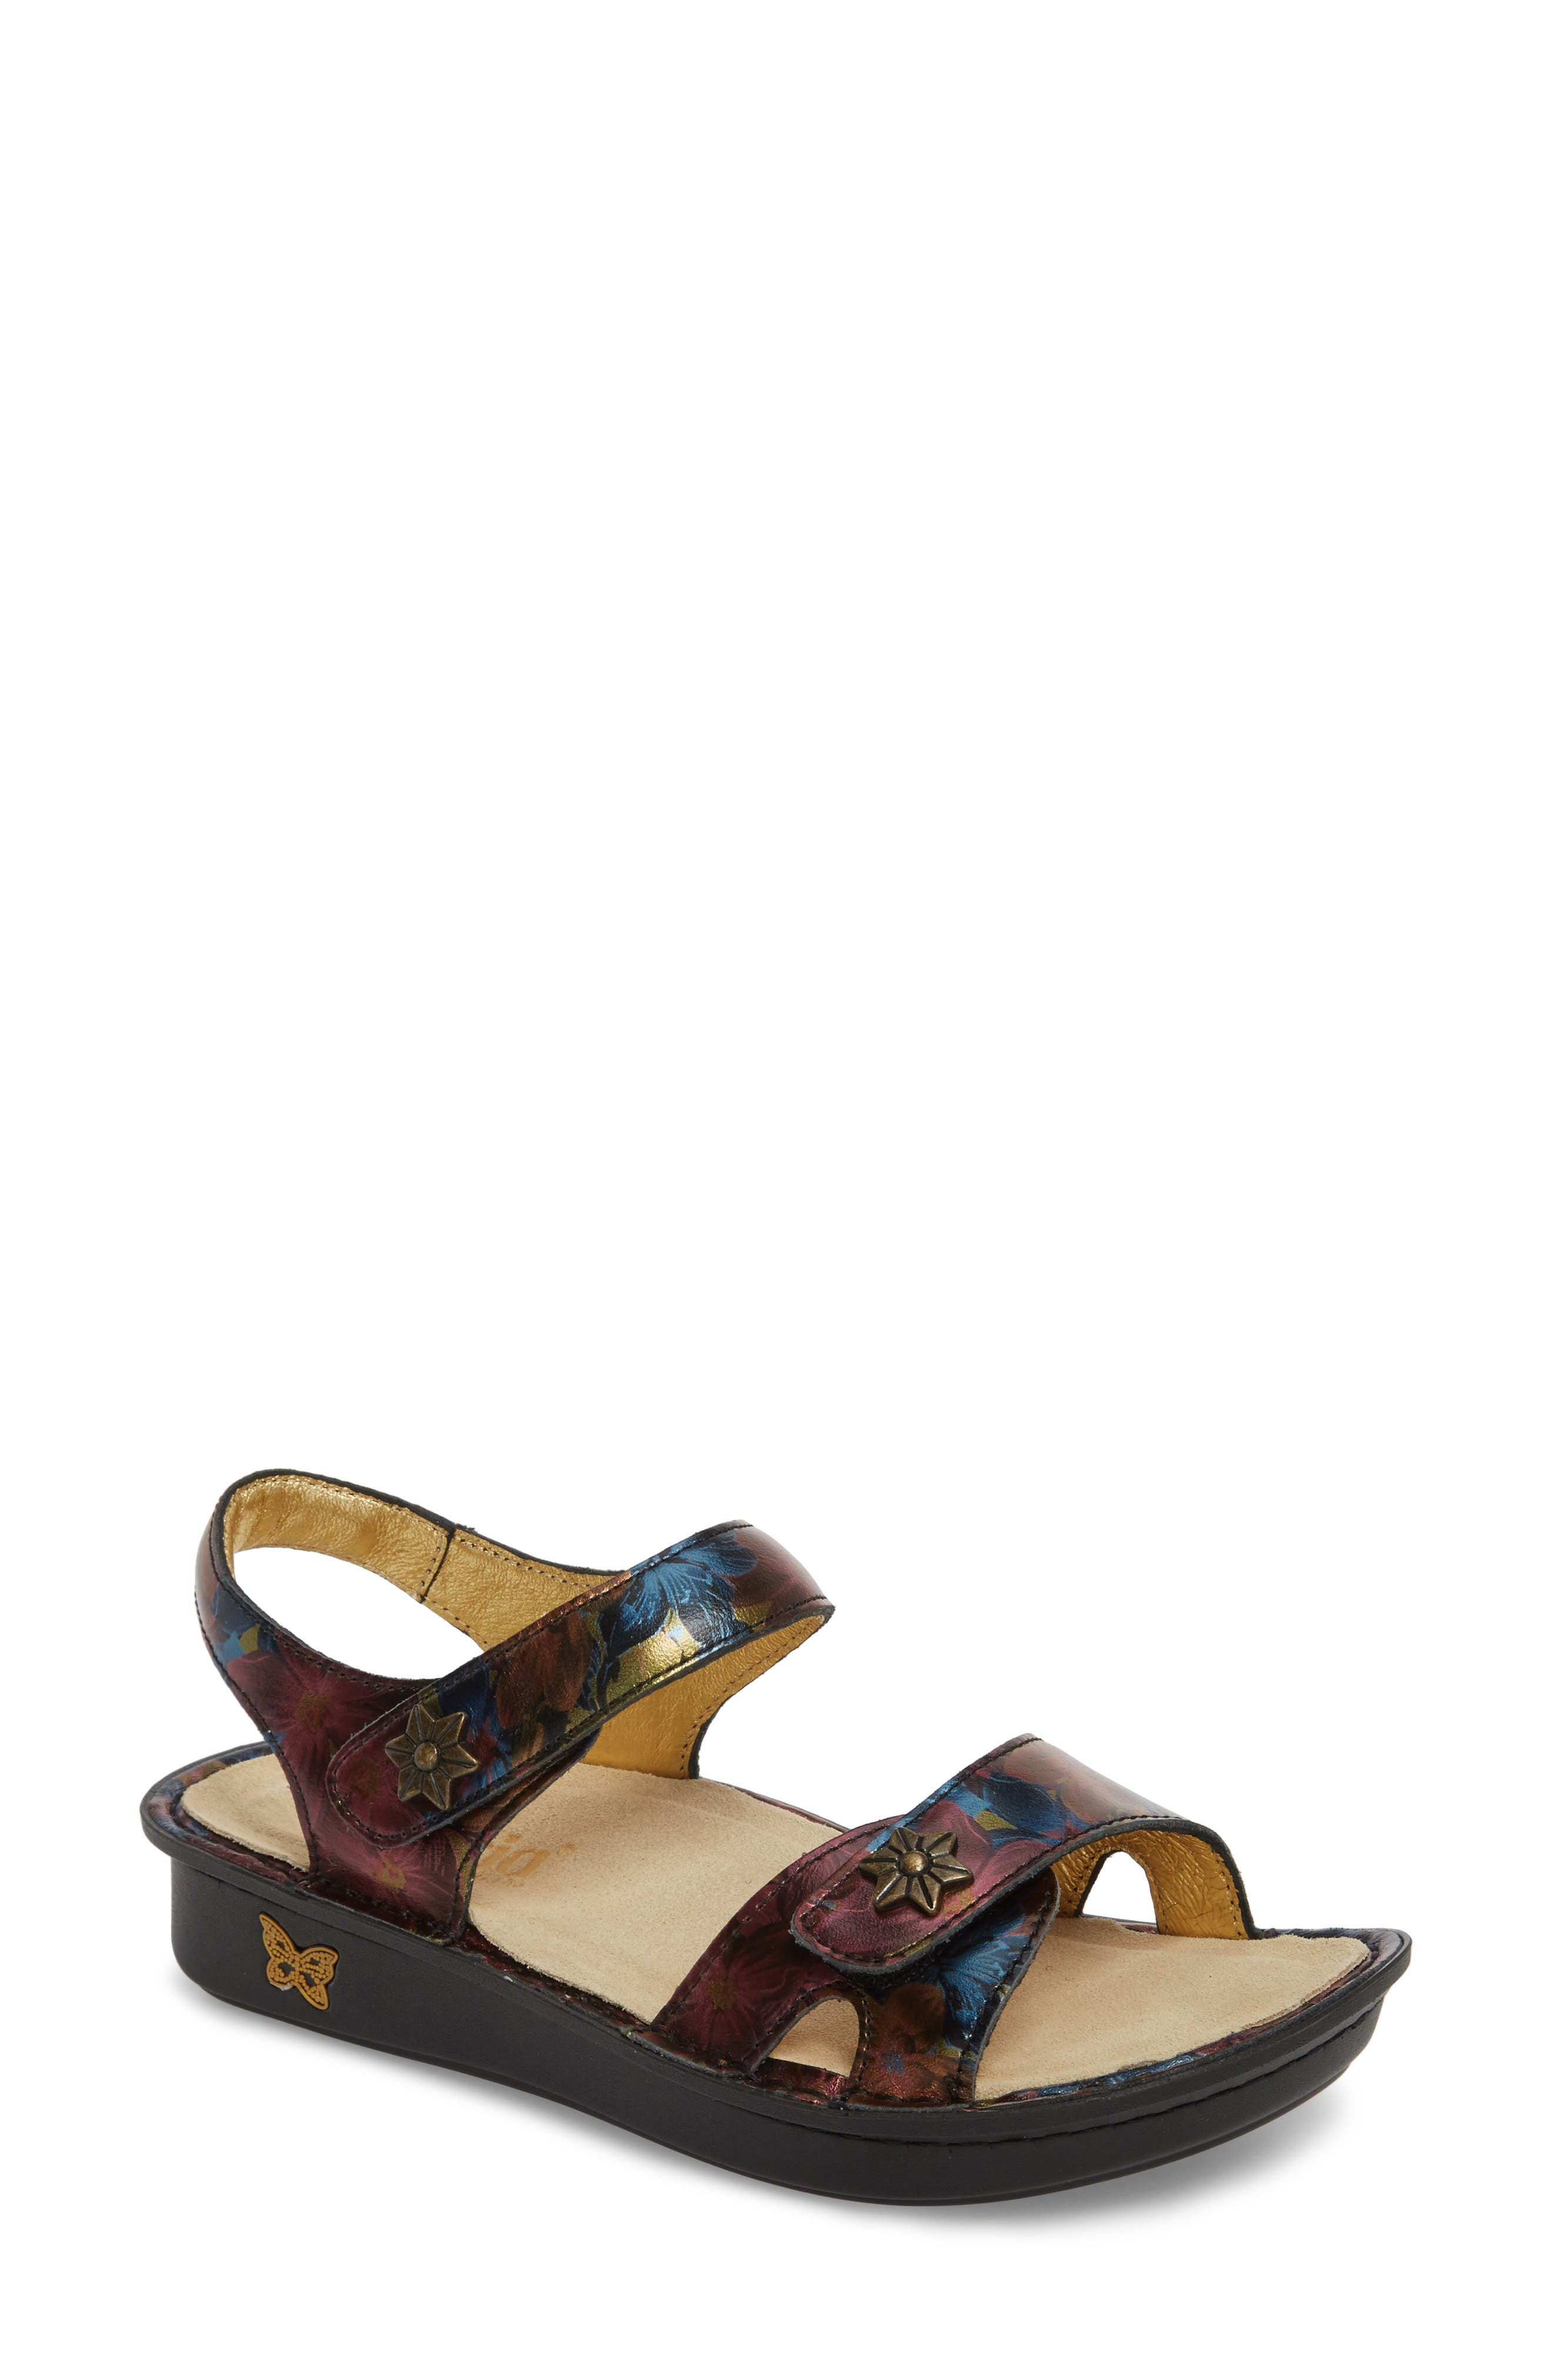 Vienna Sandal,                         Main,                         color, Special Lady Leather